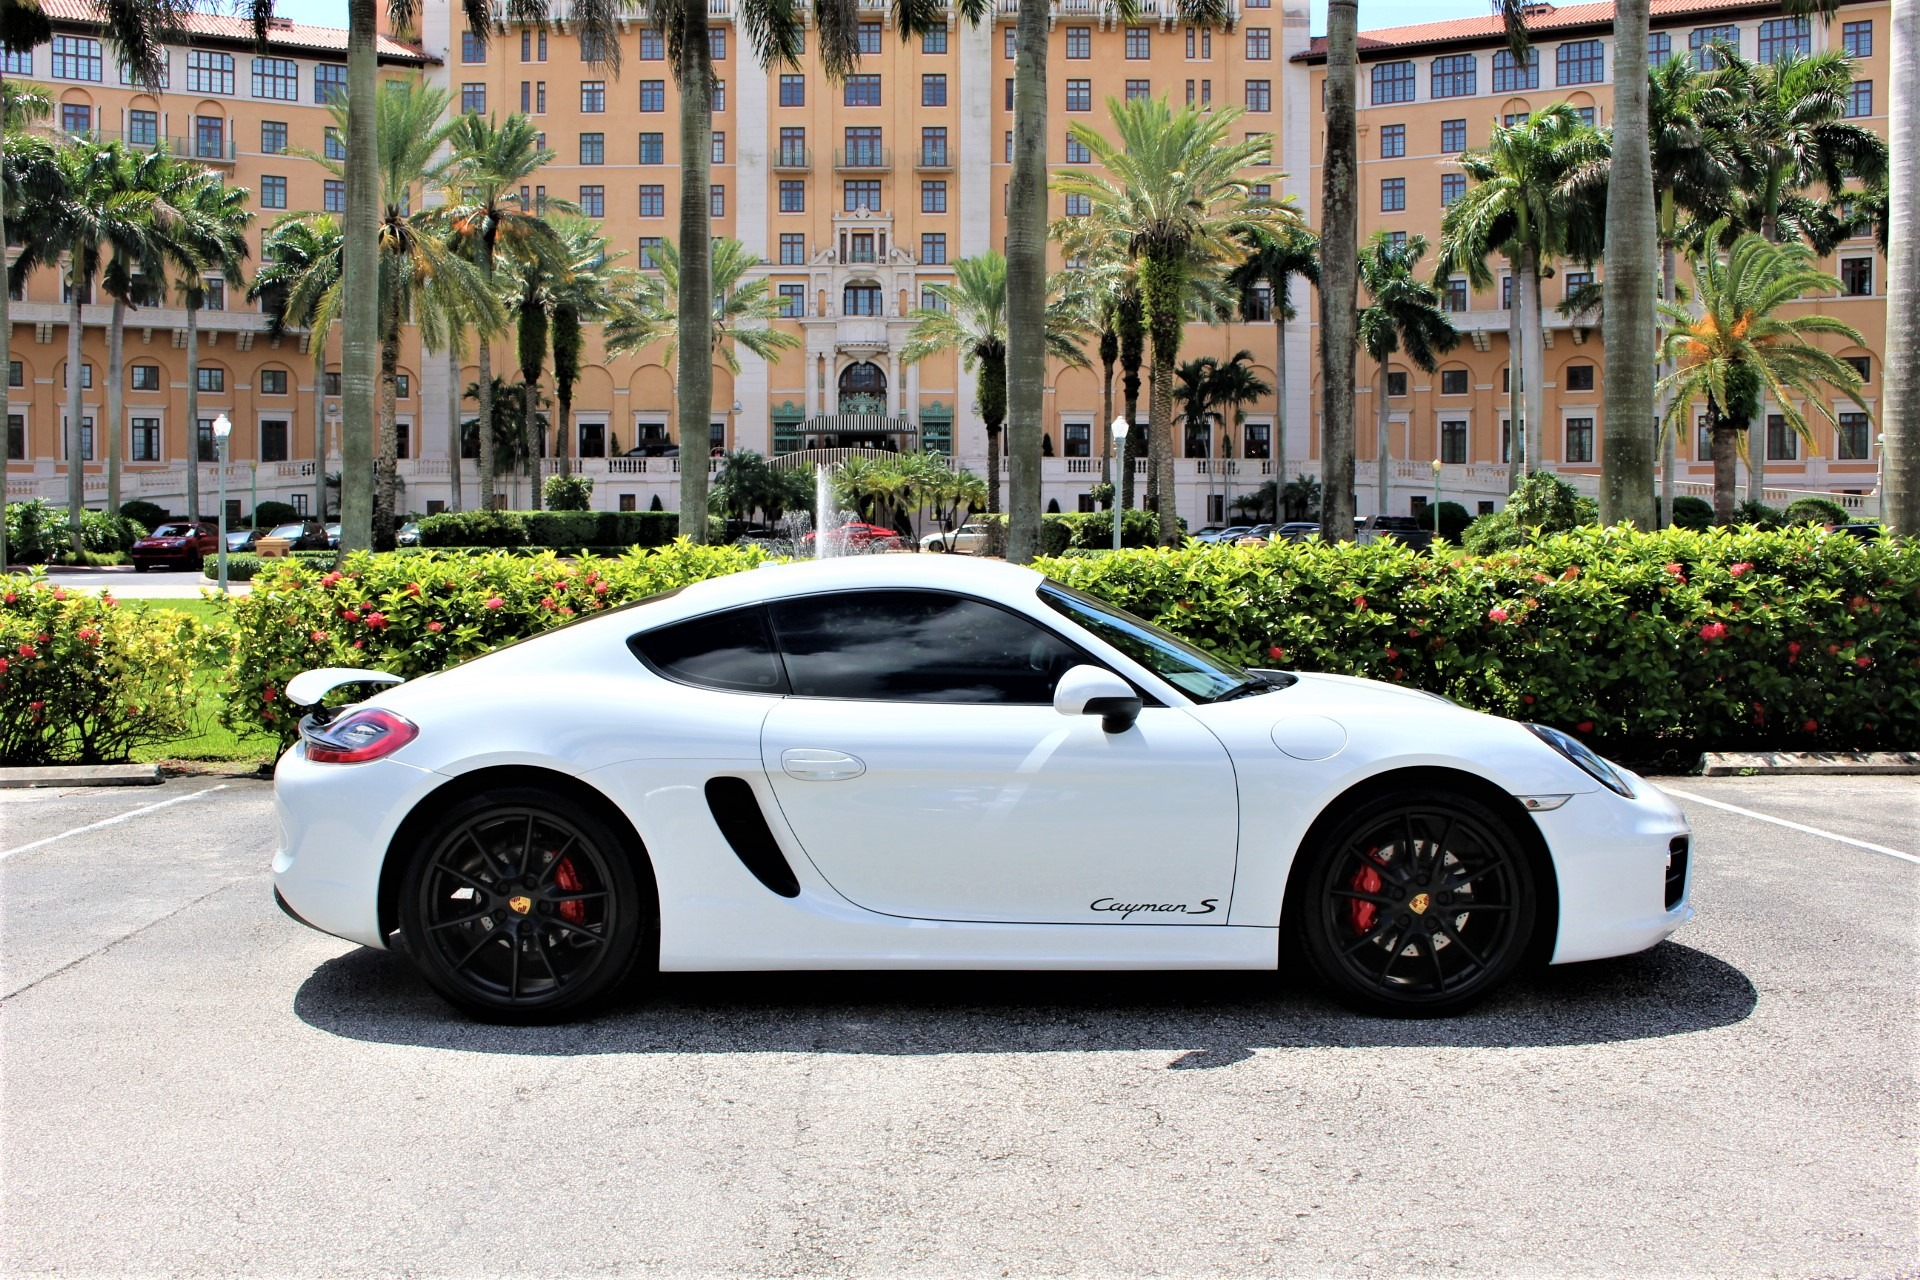 Used 2015 Porsche Cayman S for sale $65,850 at The Gables Sports Cars in Miami FL 33146 2